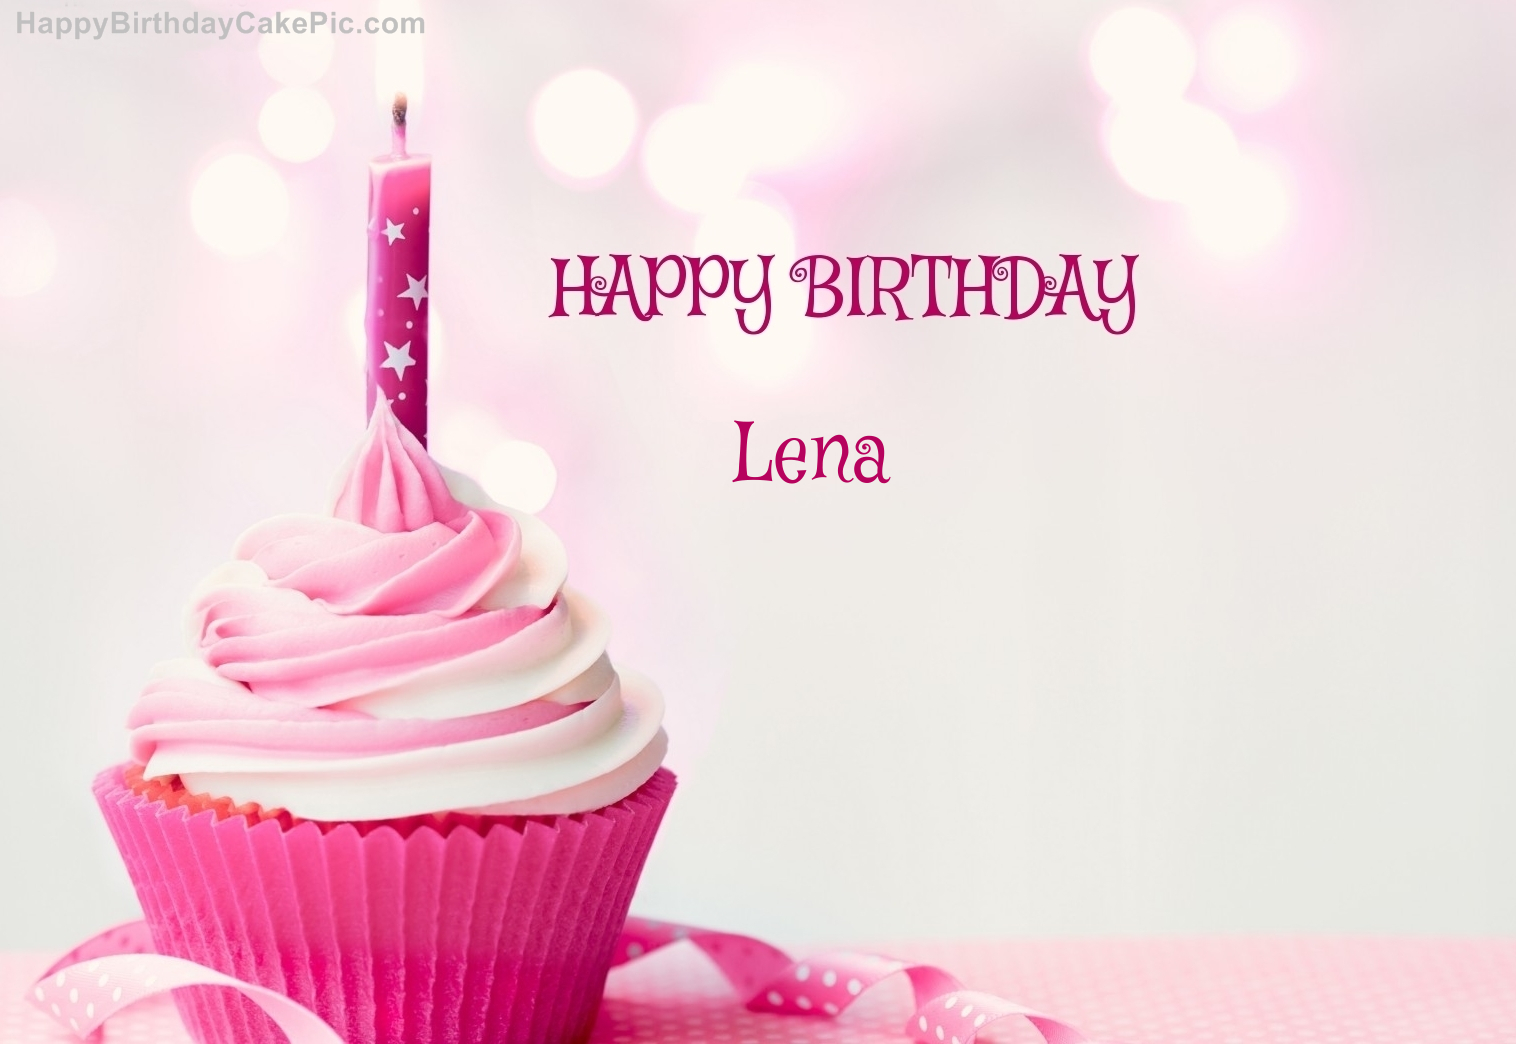 Happy Birthday Cupcake Candle Pink Cake For Lena